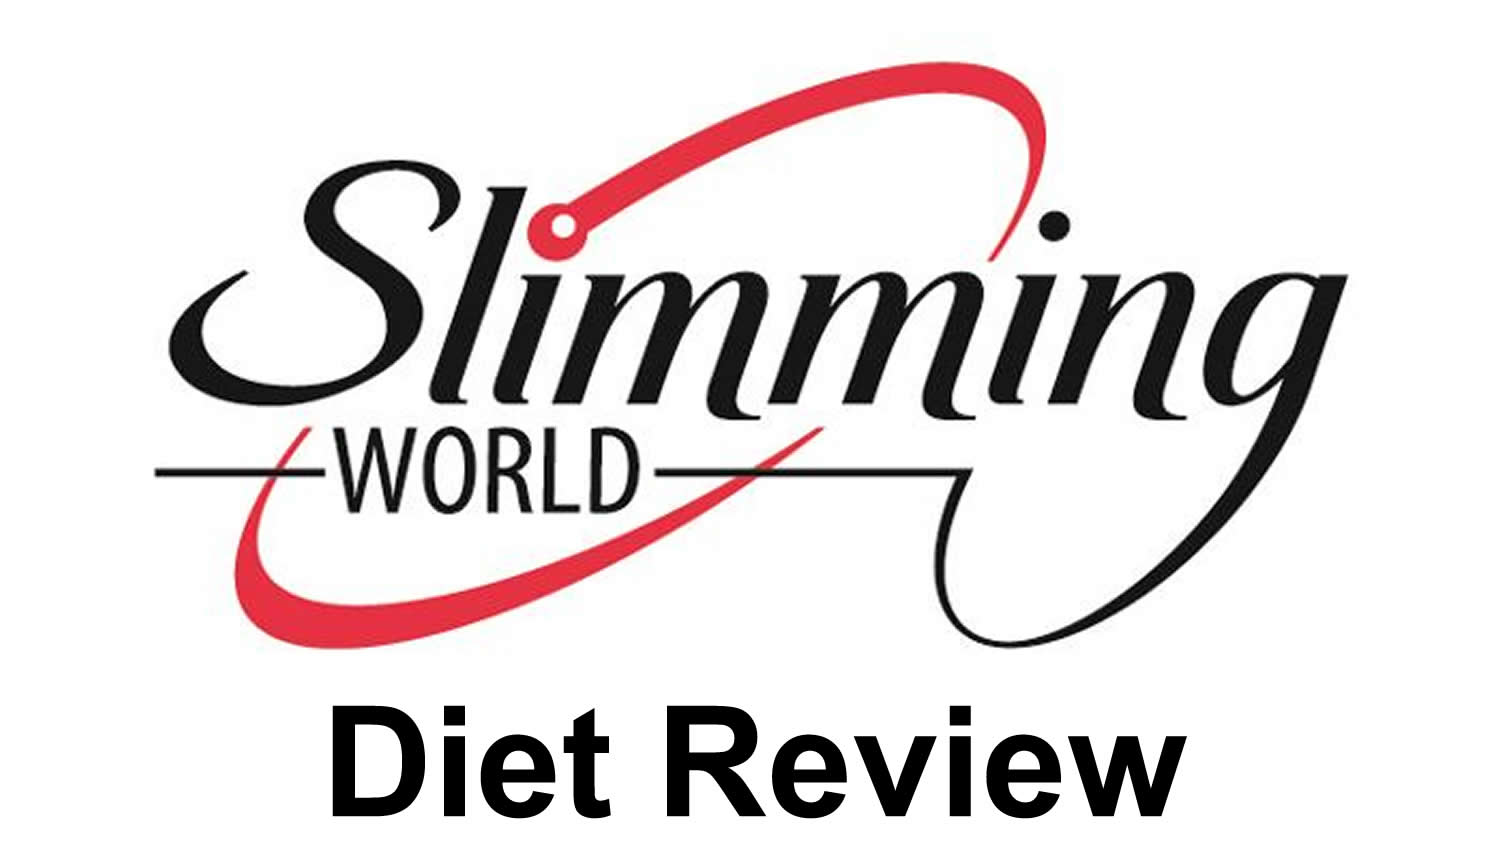 slimming world diet